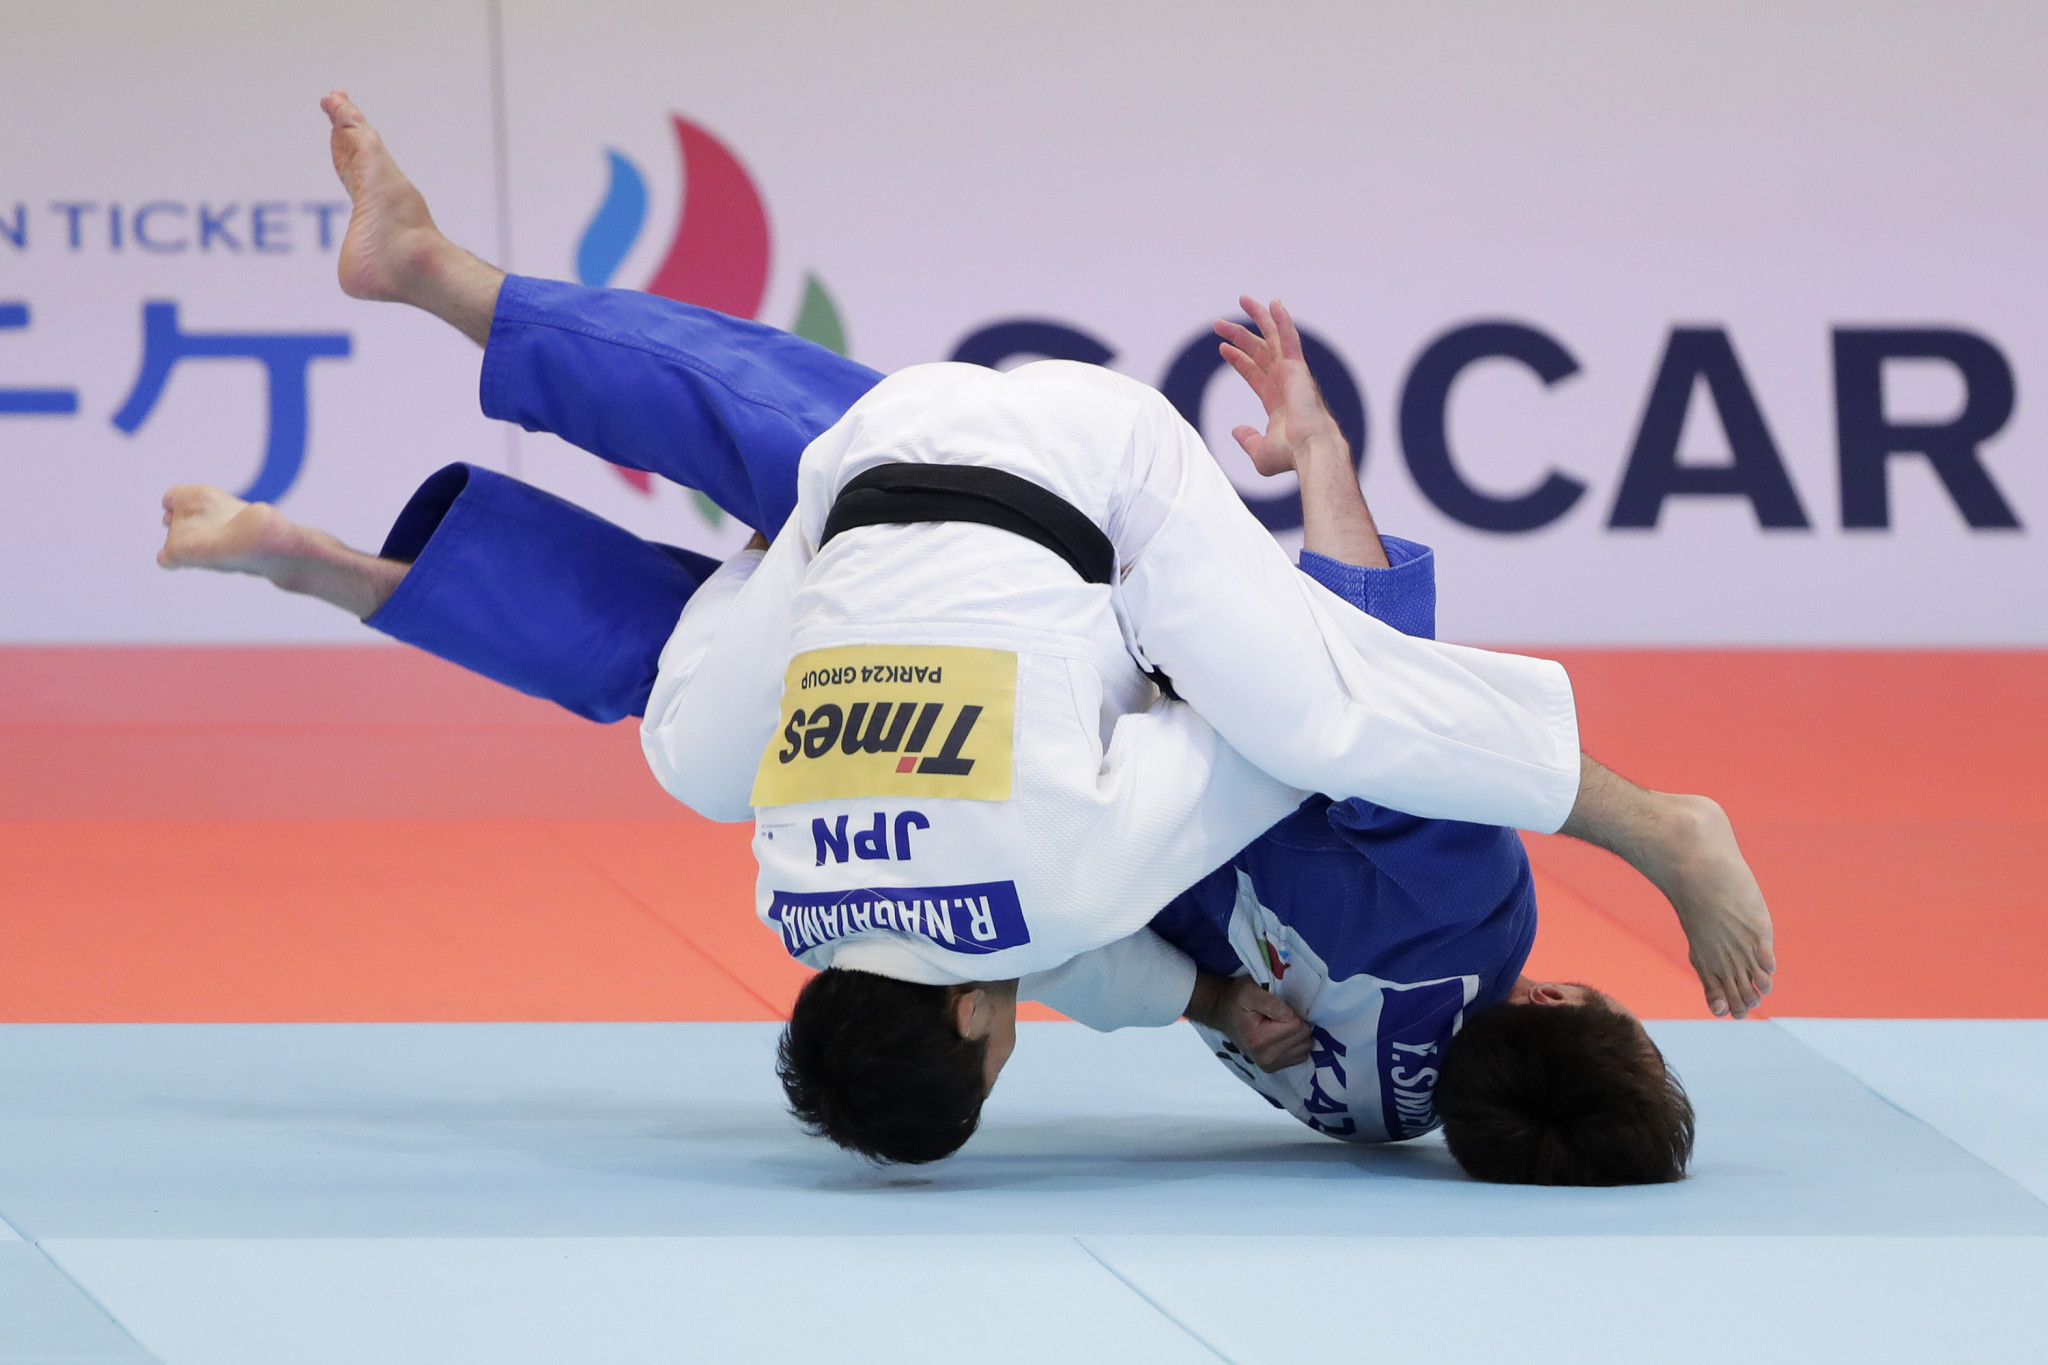 Men's under-60 kilogram fourth seed Ryuju Nagayama, meanwhile, earned Japan a bronze medal ©Getty Images